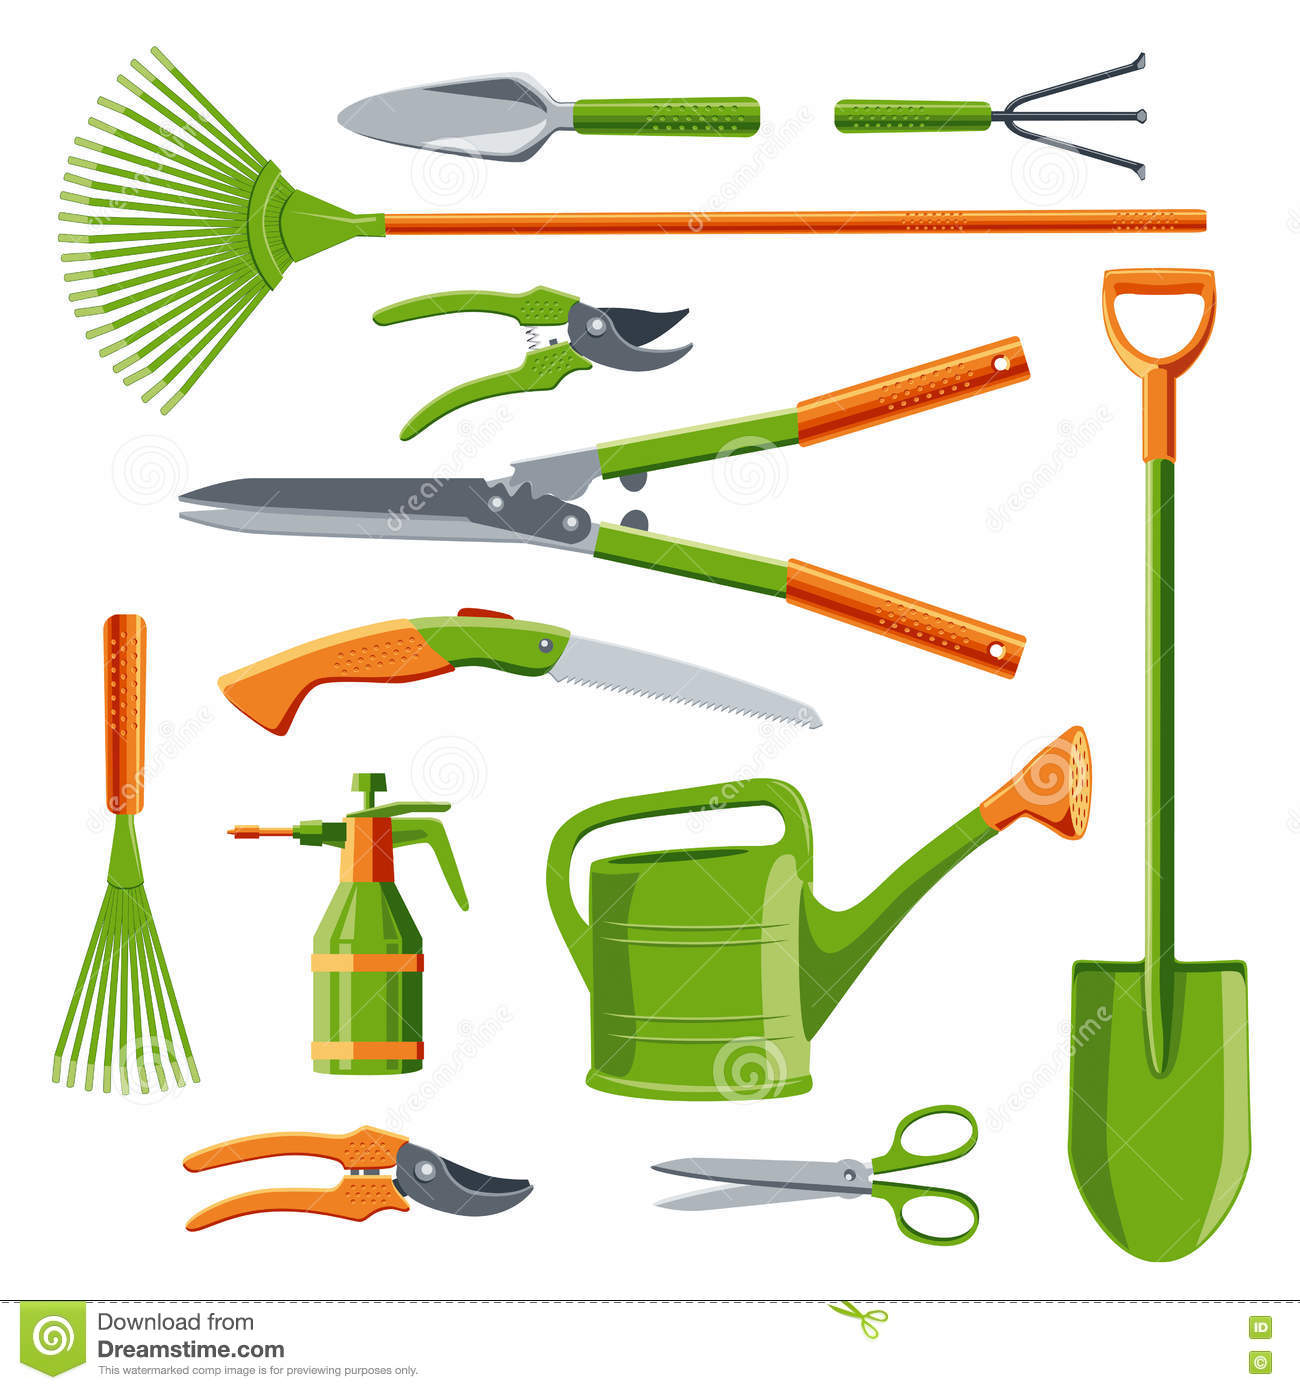 Essential Gardening Tools Vector Stock Vector Image 77317378